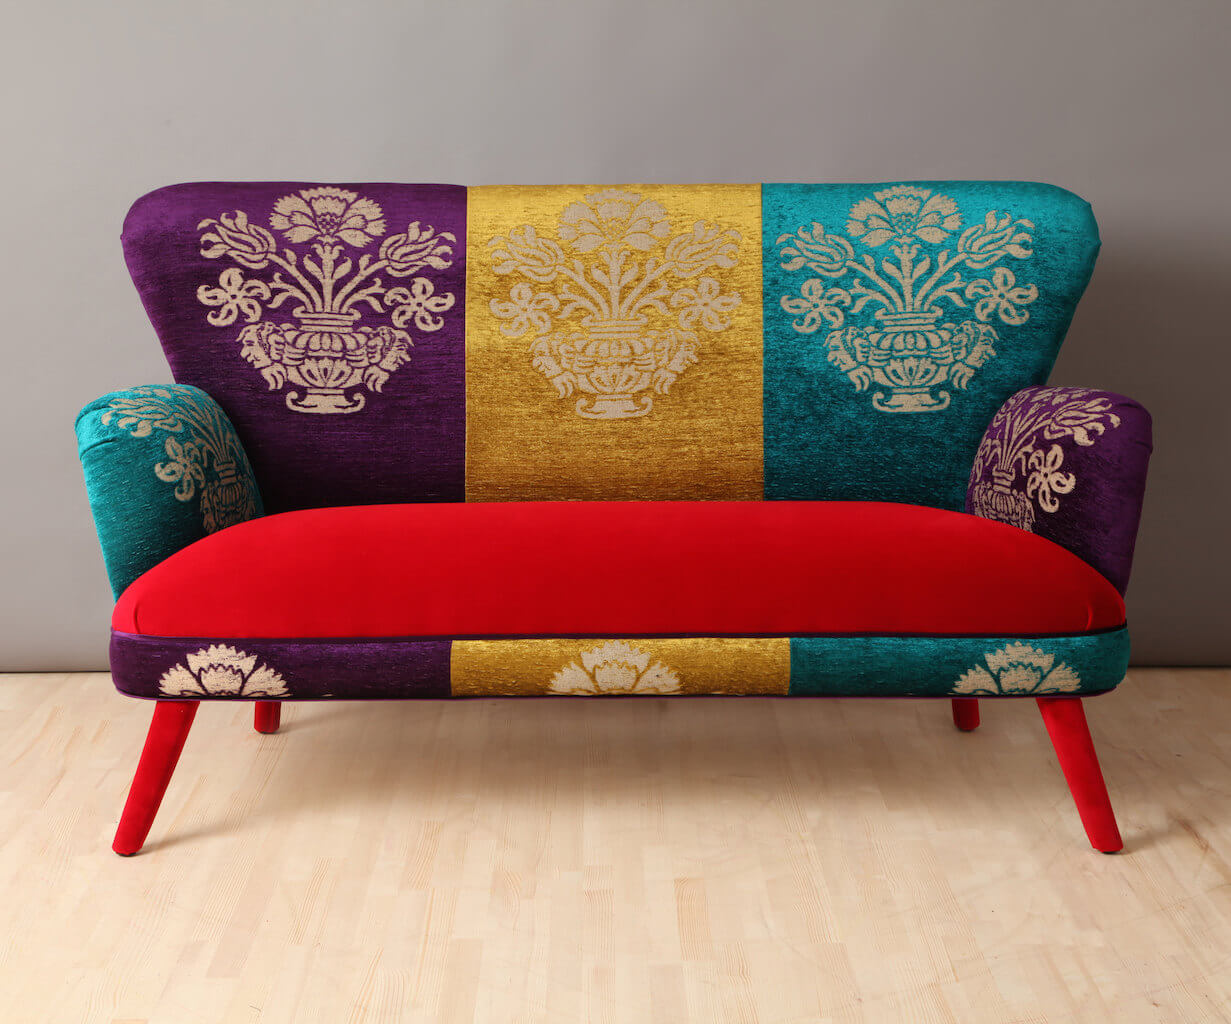 This colorful couch will light up a room